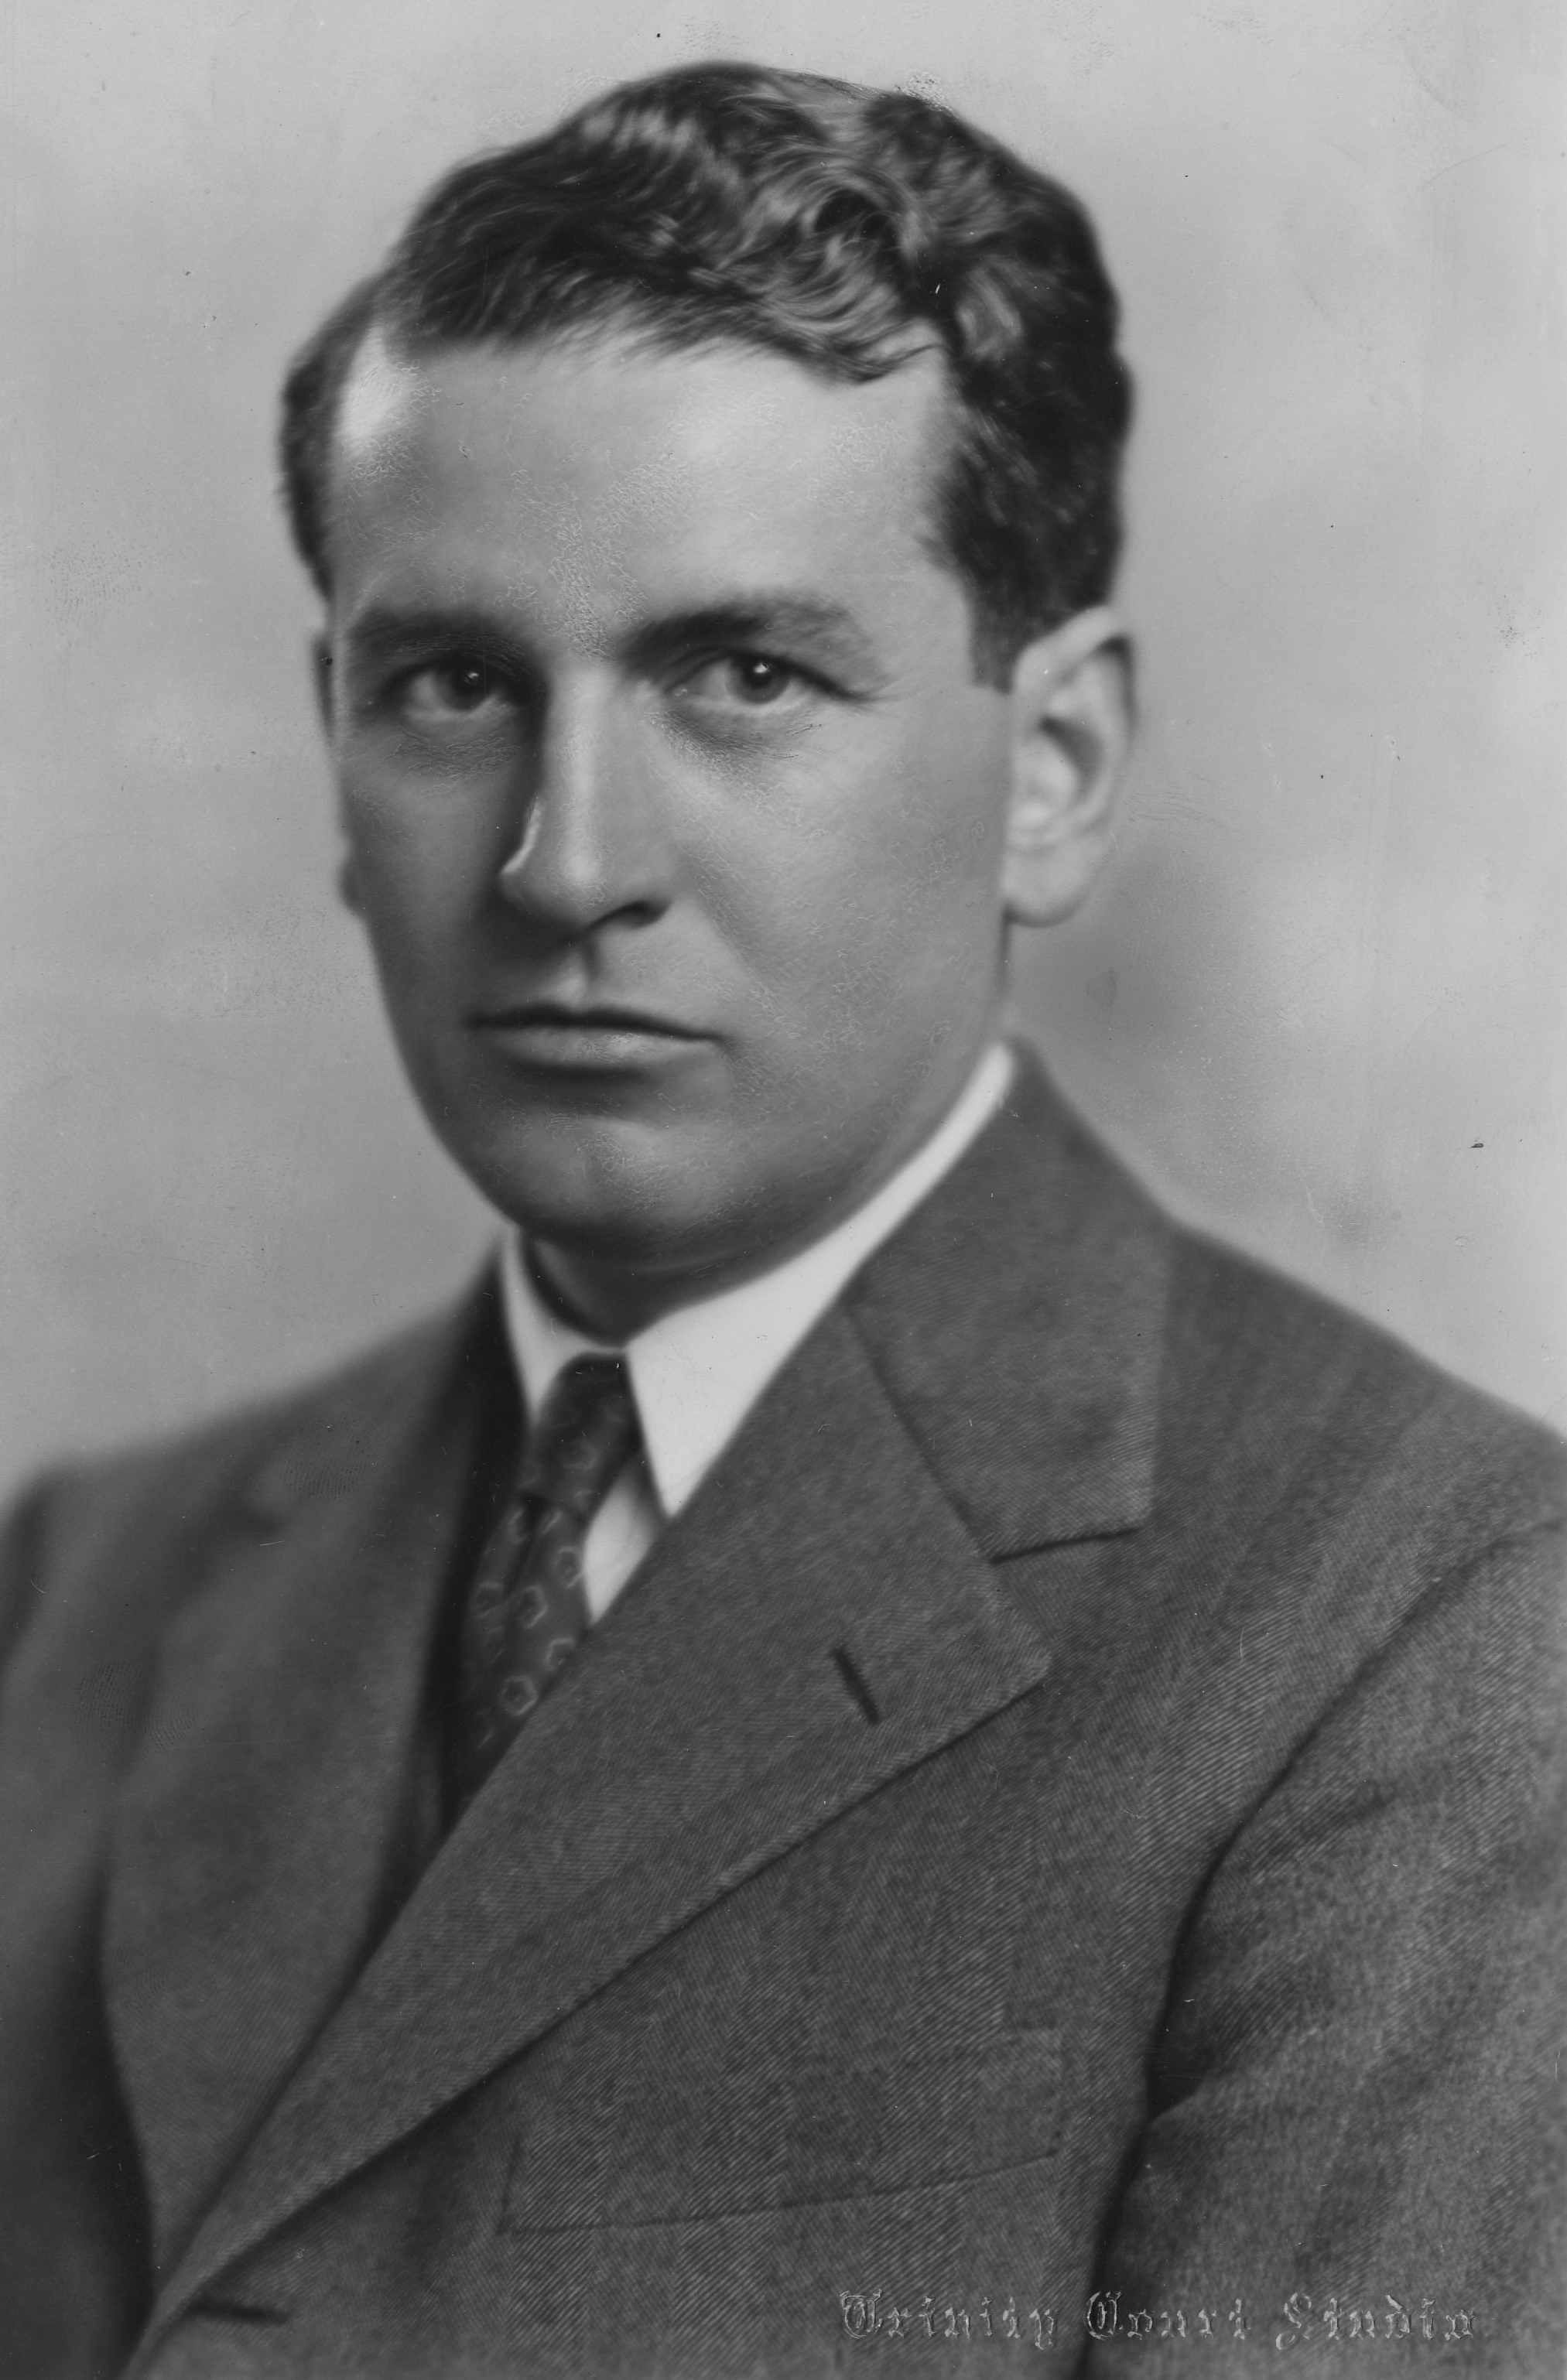 During World War II, 41-year-old James G. Fulton served with the U.S. Naval Reserves in the Pacific Luzon invasion. Then, the naval lieutenant shed his uniform and took his seat in the 79th U.S. Congress.